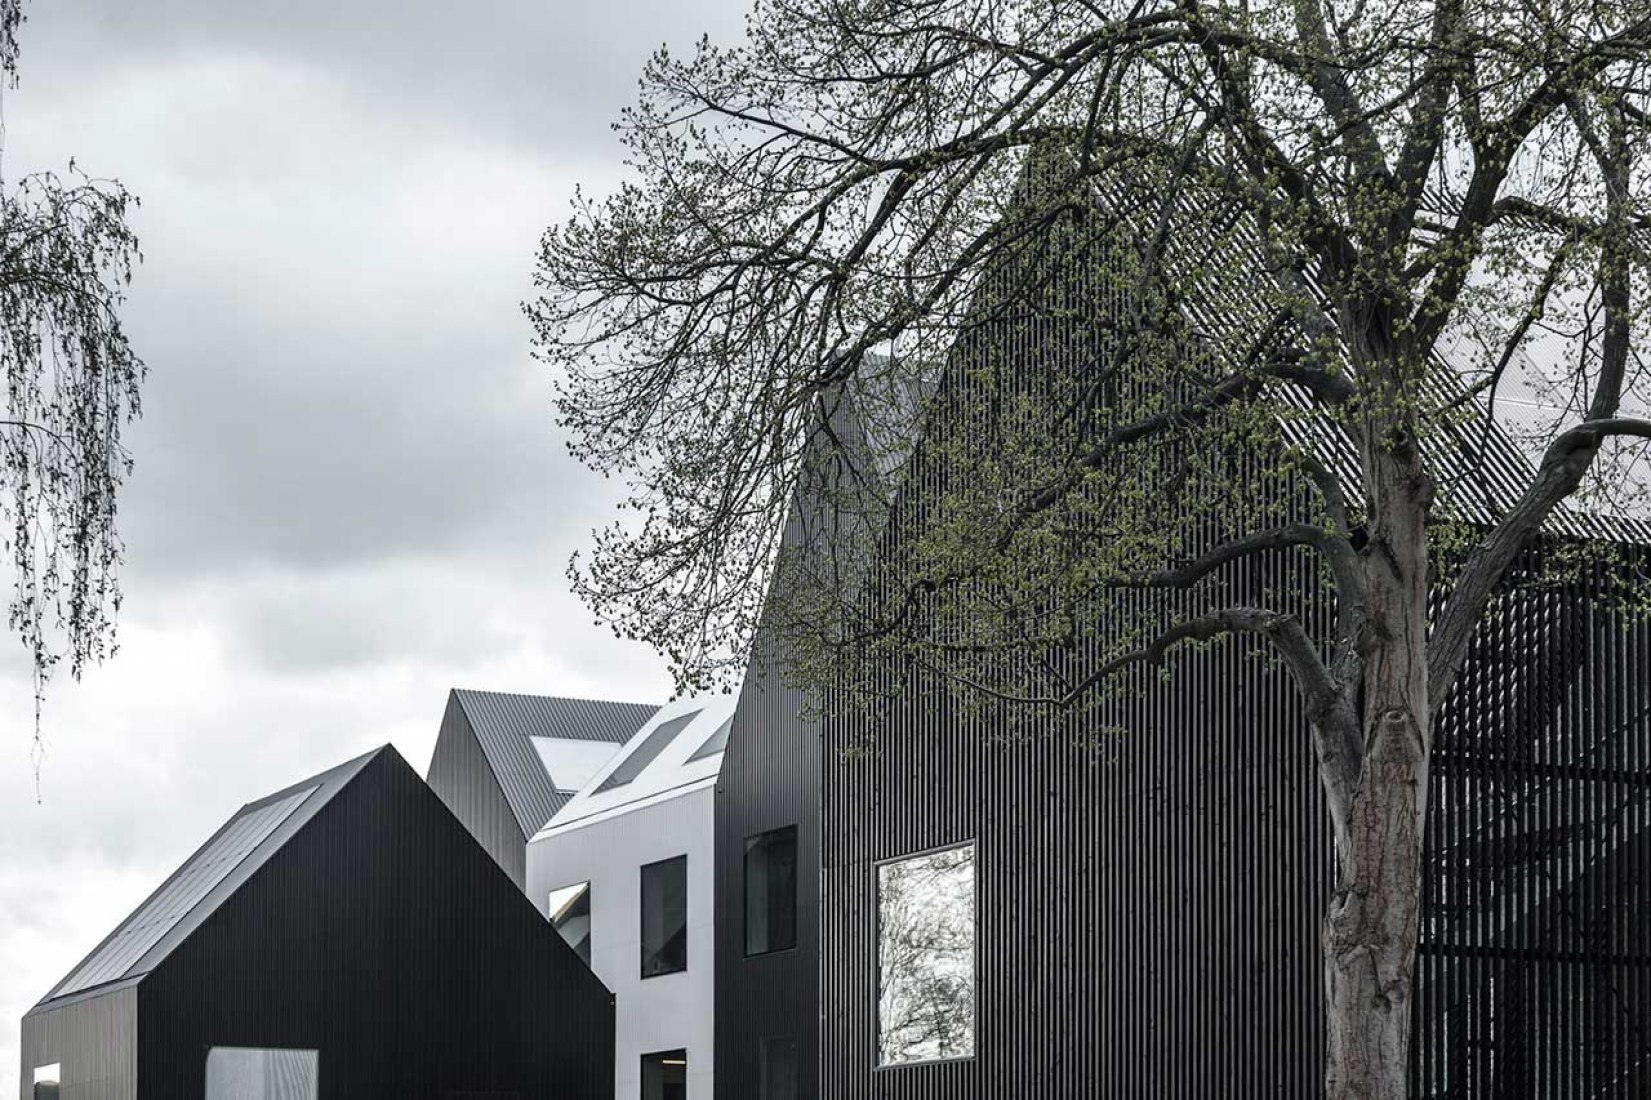 New kindergarten in Copenhagen by COBE Architects. Photograph © Rasmus Hjortshøj, Coast Studio.